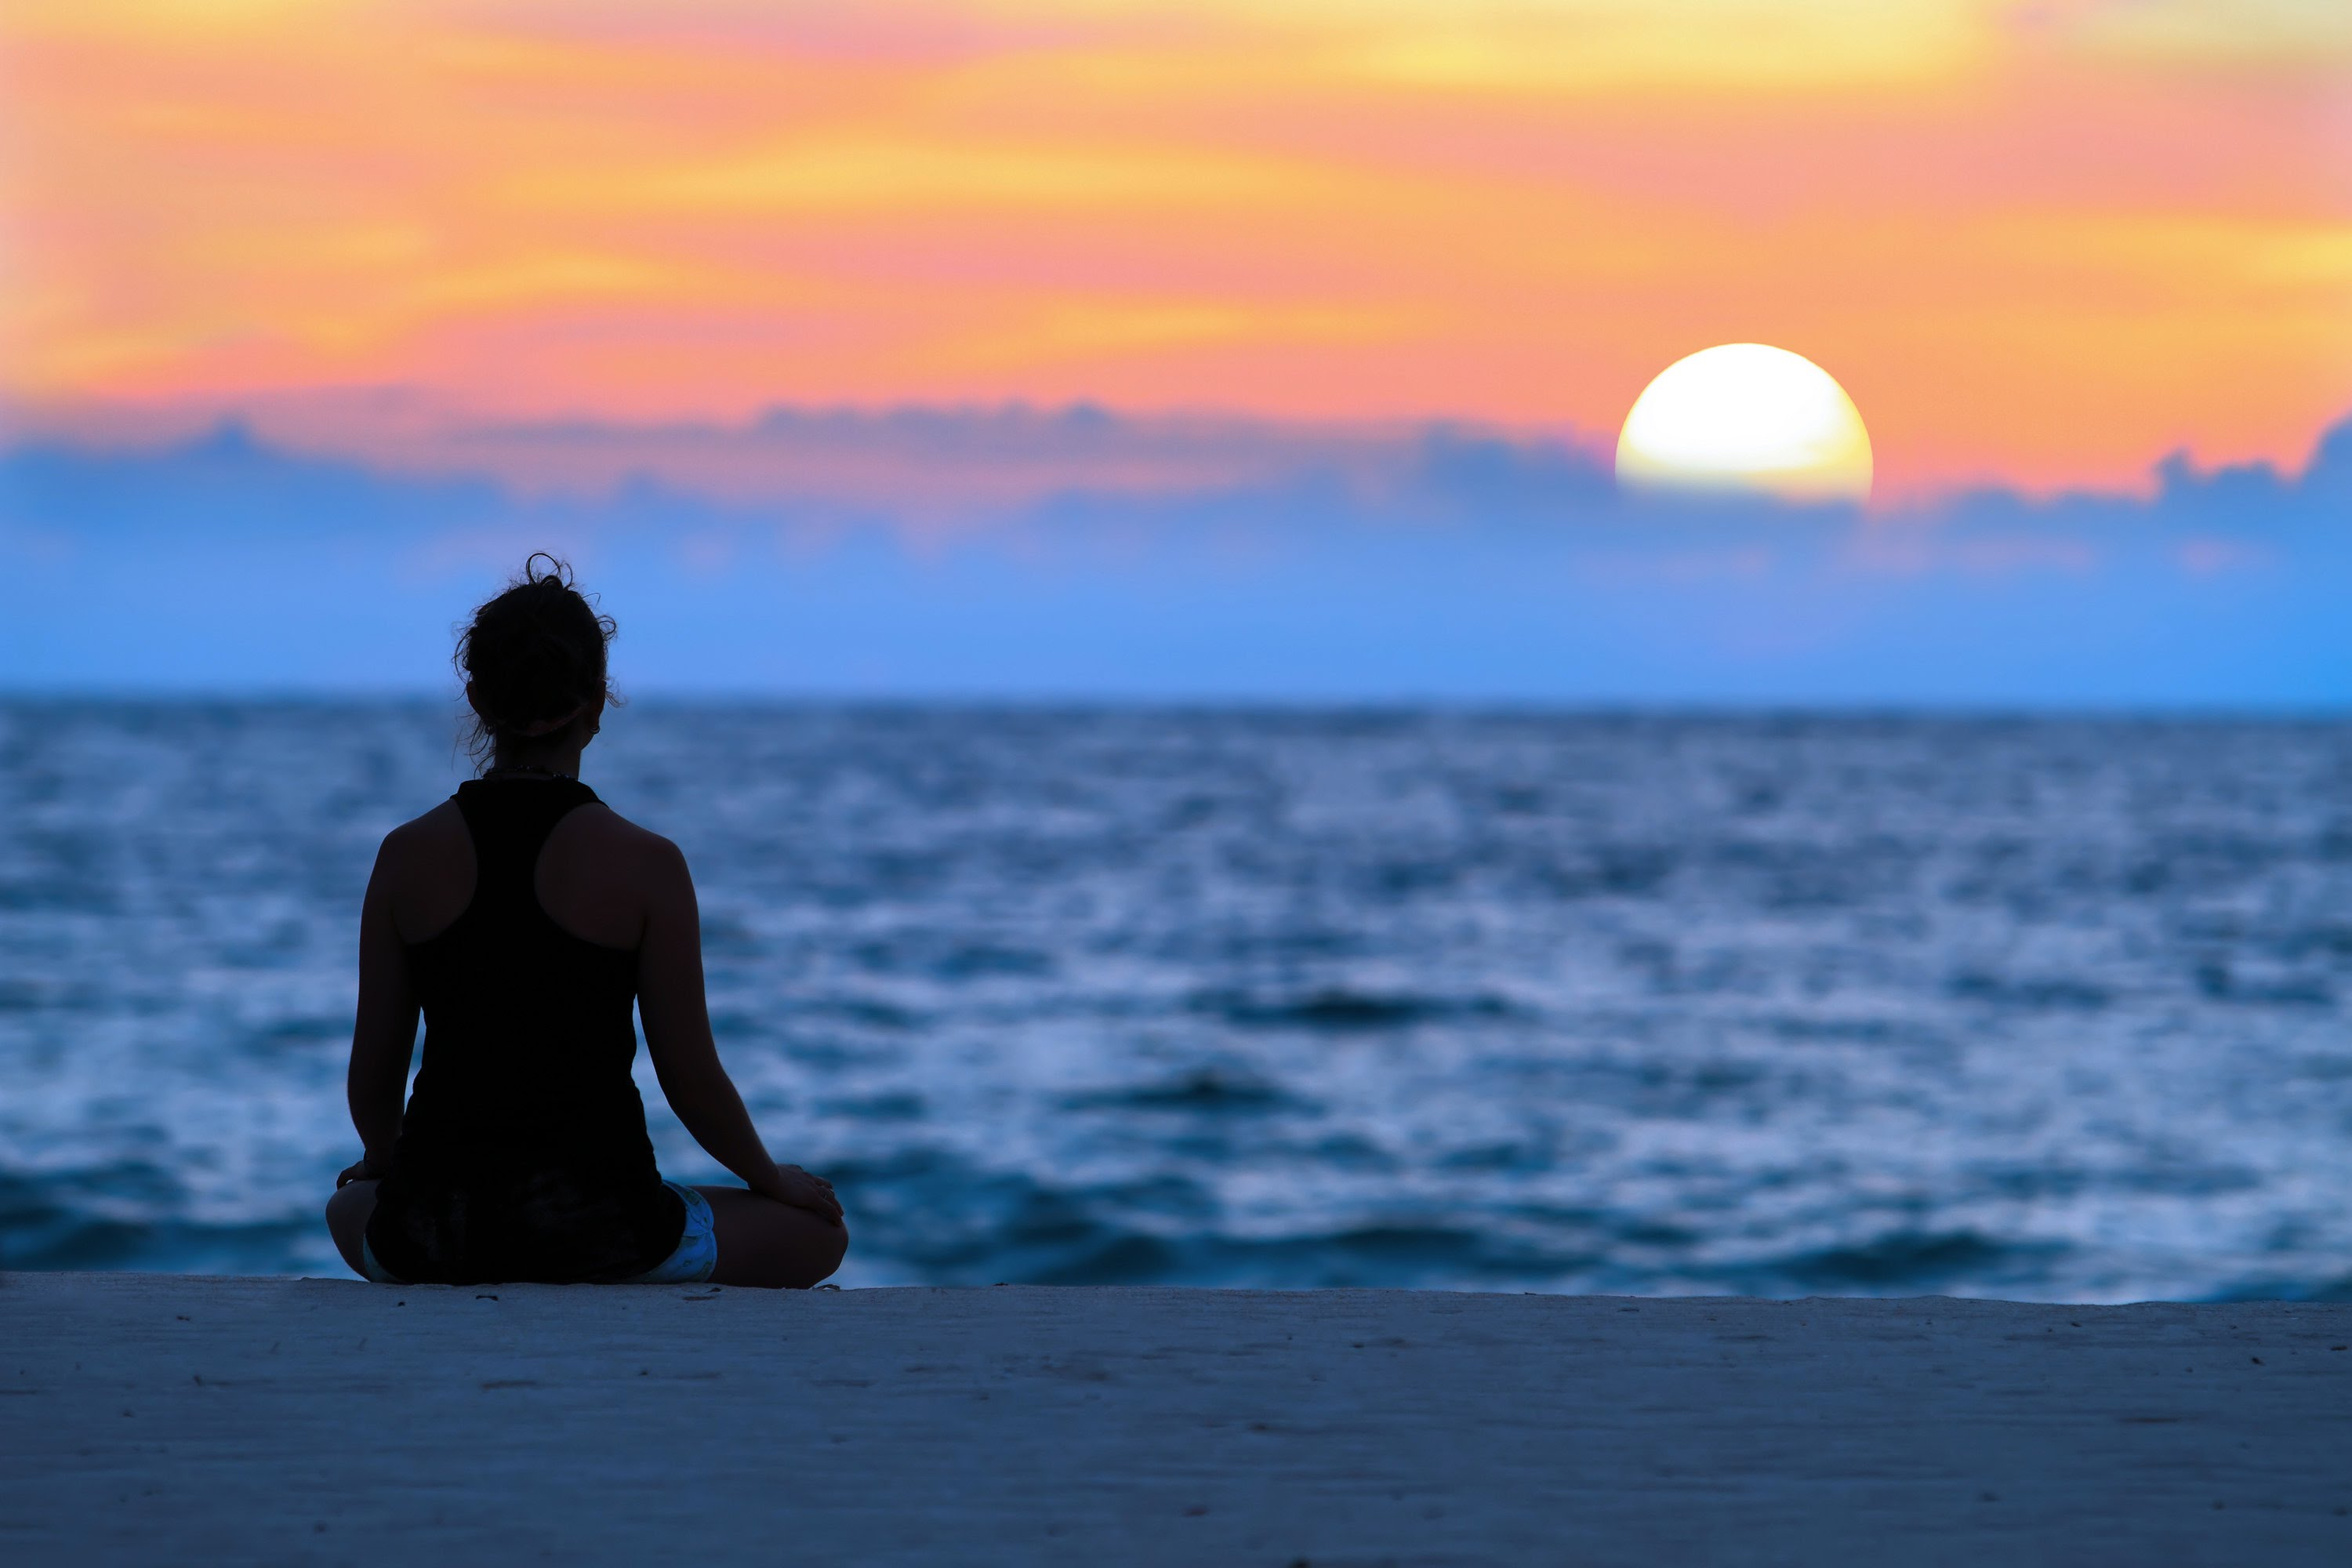 meditation wallpapers high quality download free